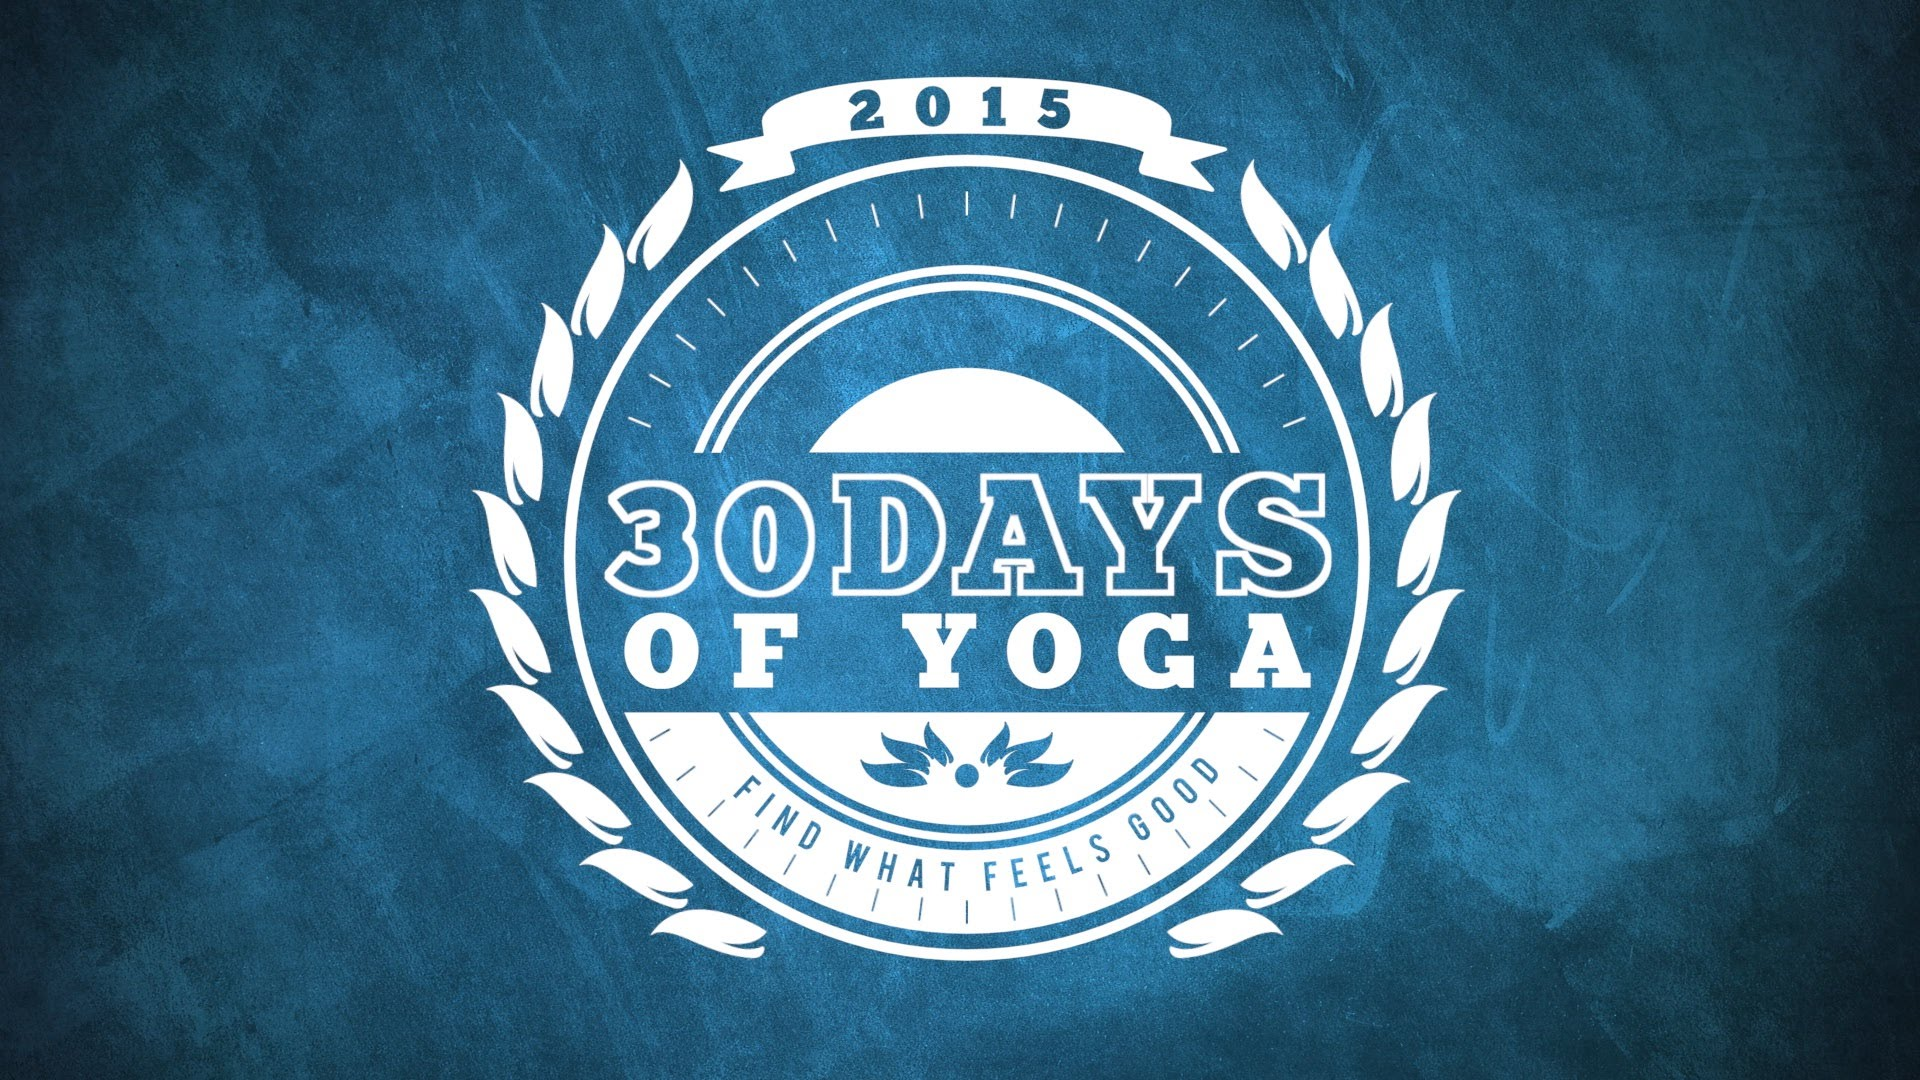 30 Days of Yoga - Welcome! - Yoga With Adriene